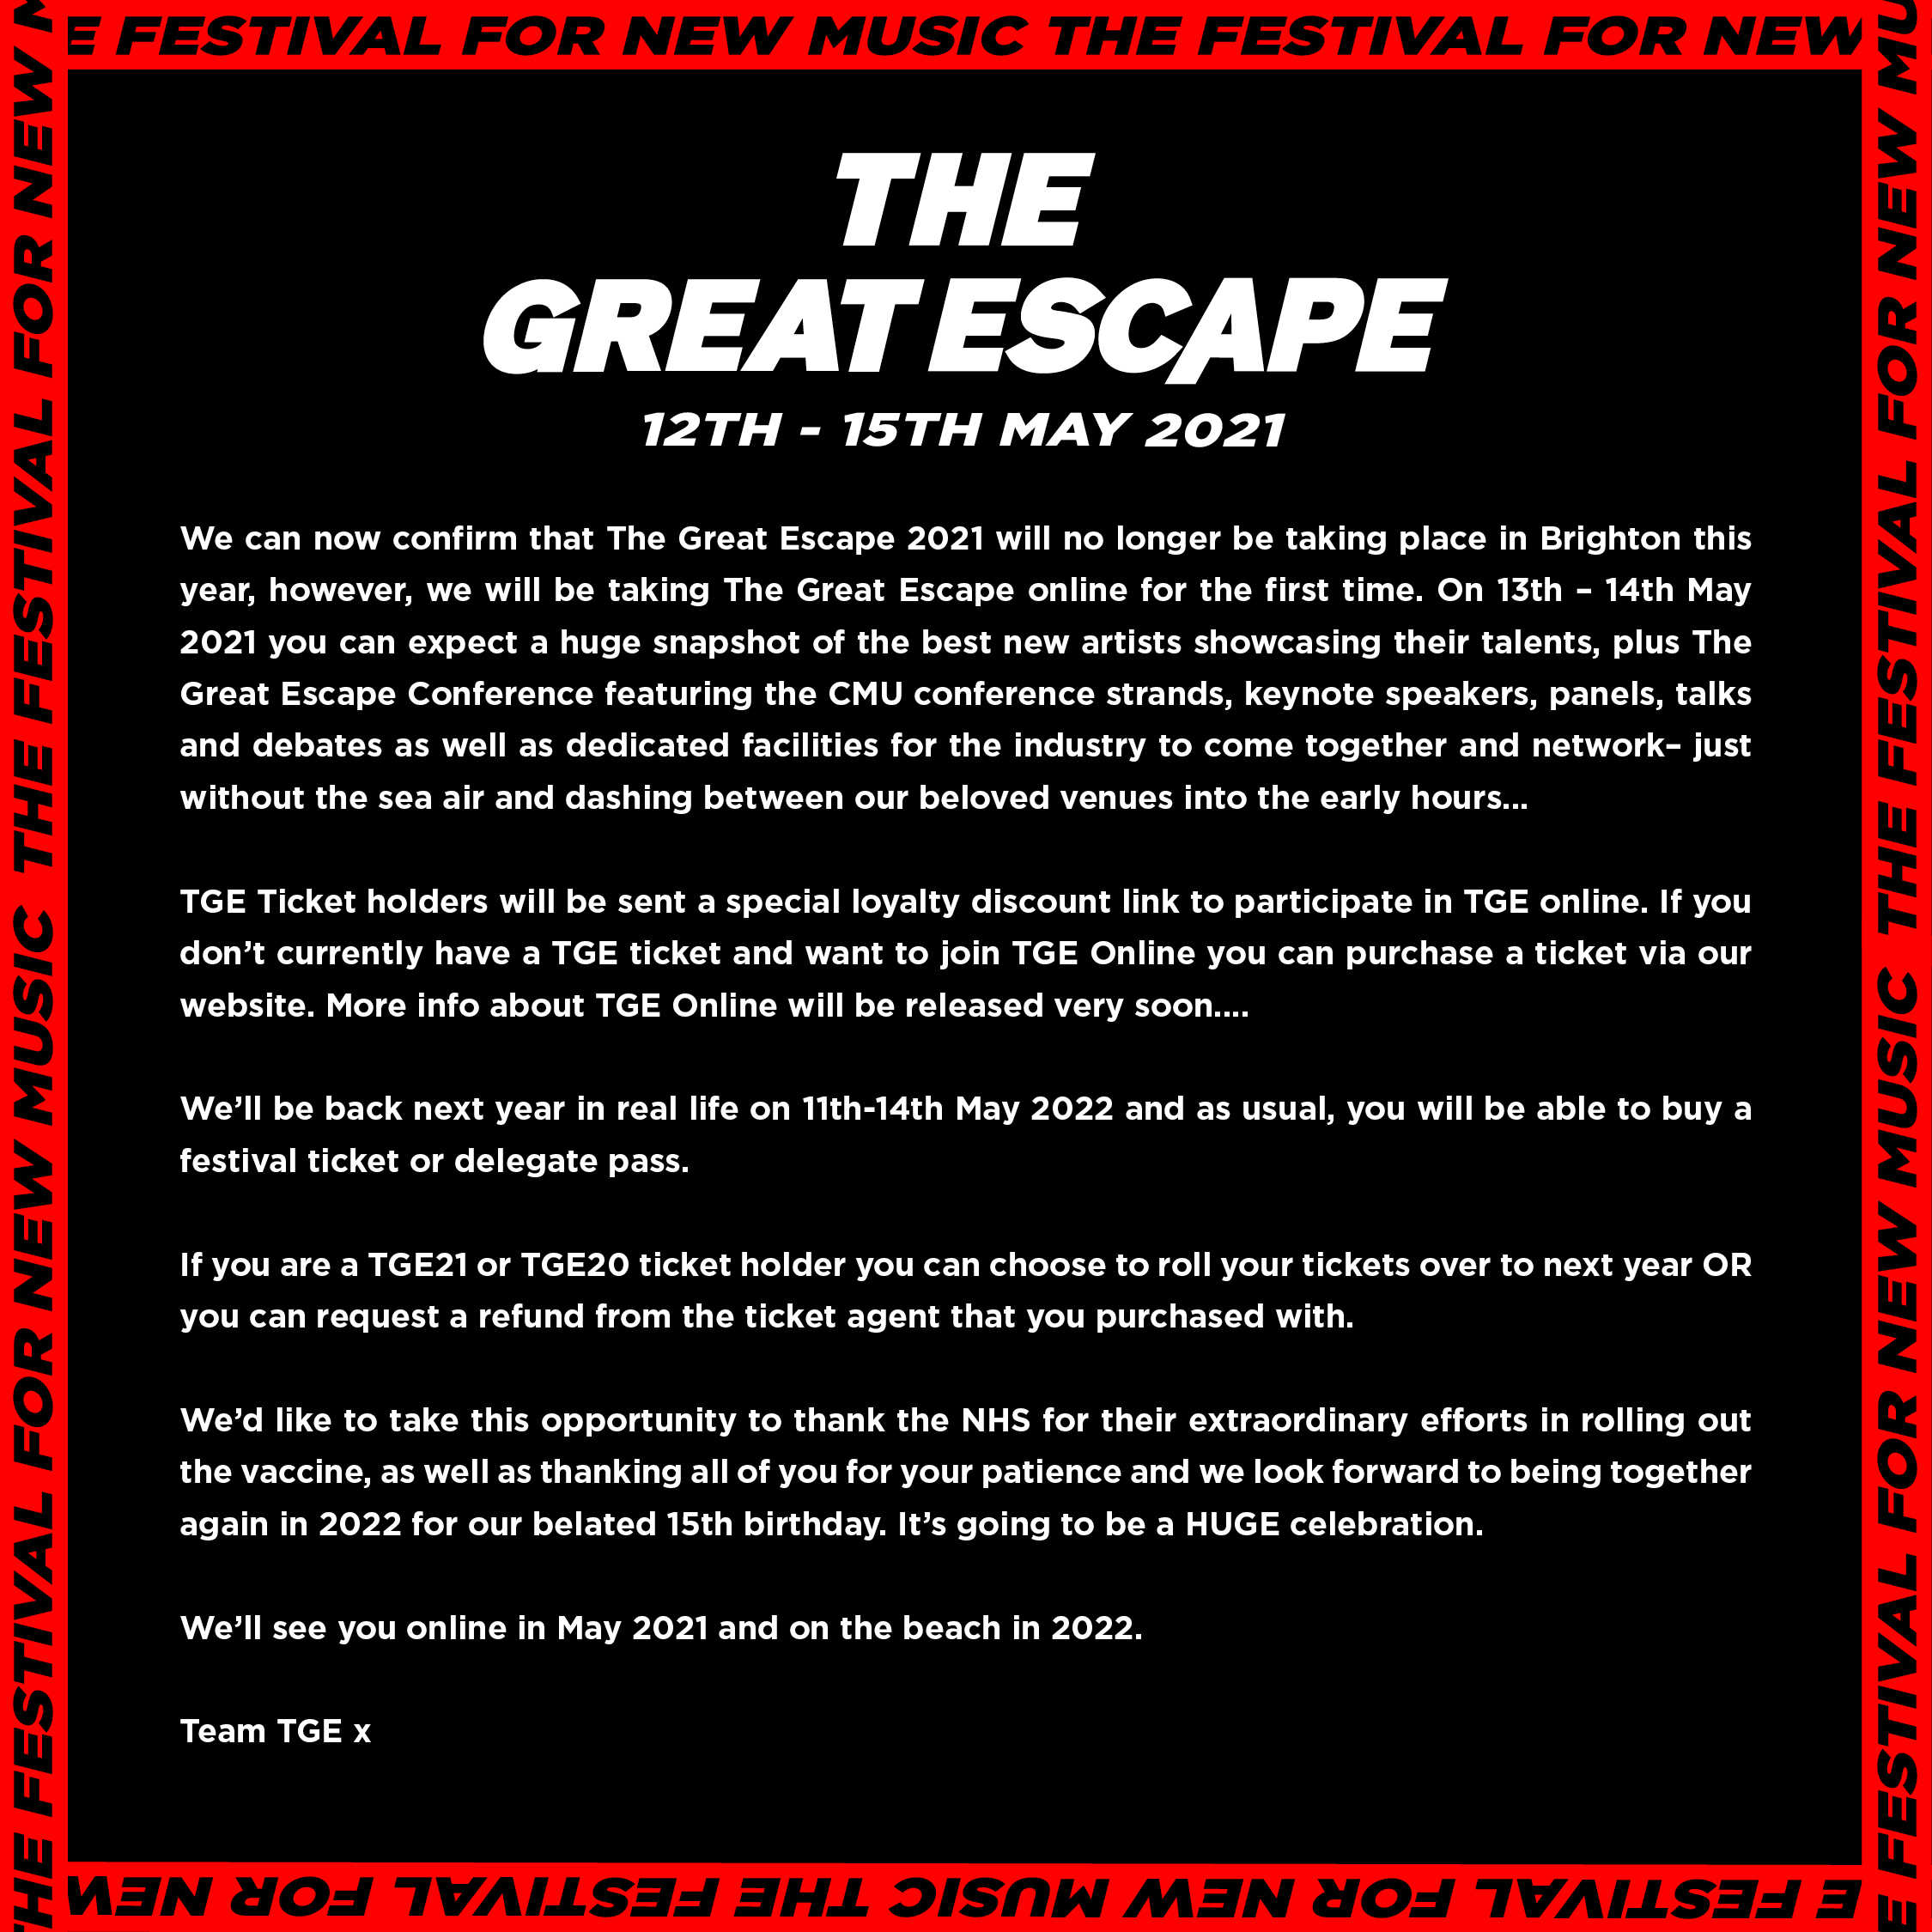 The Great Escape Festival 2021